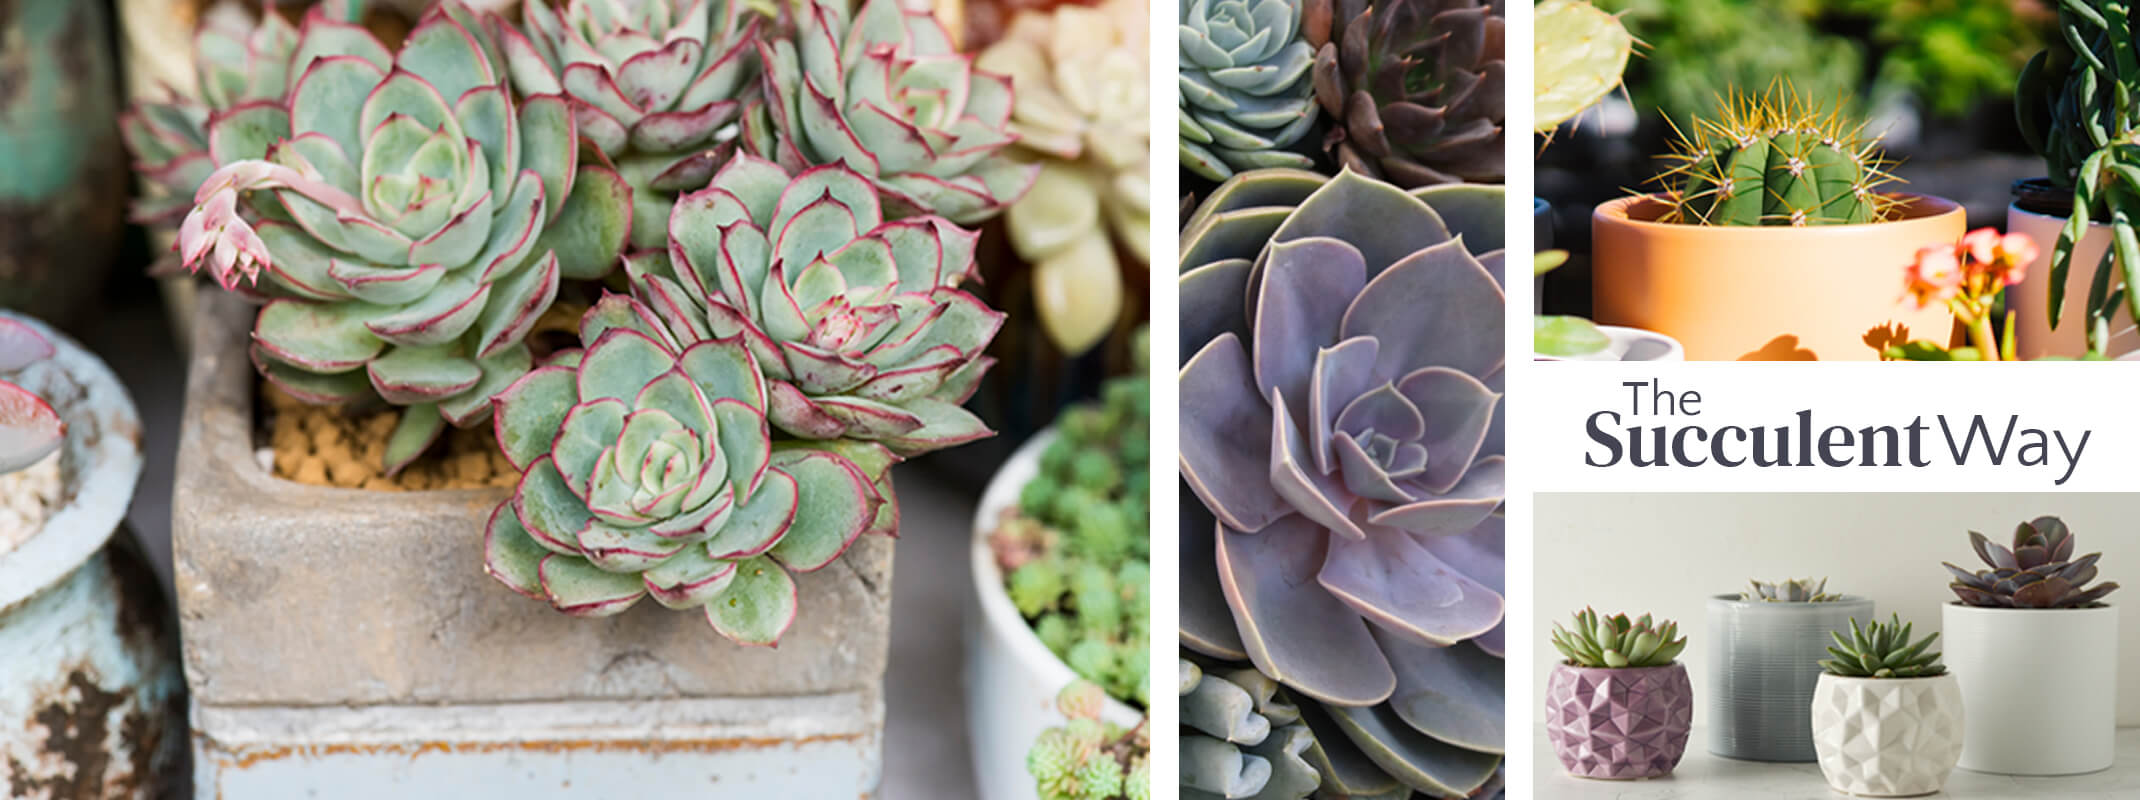 succulents in rustic containers, assorted succulents, cactus in peach and pebble pottery and single succulents in modern pots with the words the succulent way on the image